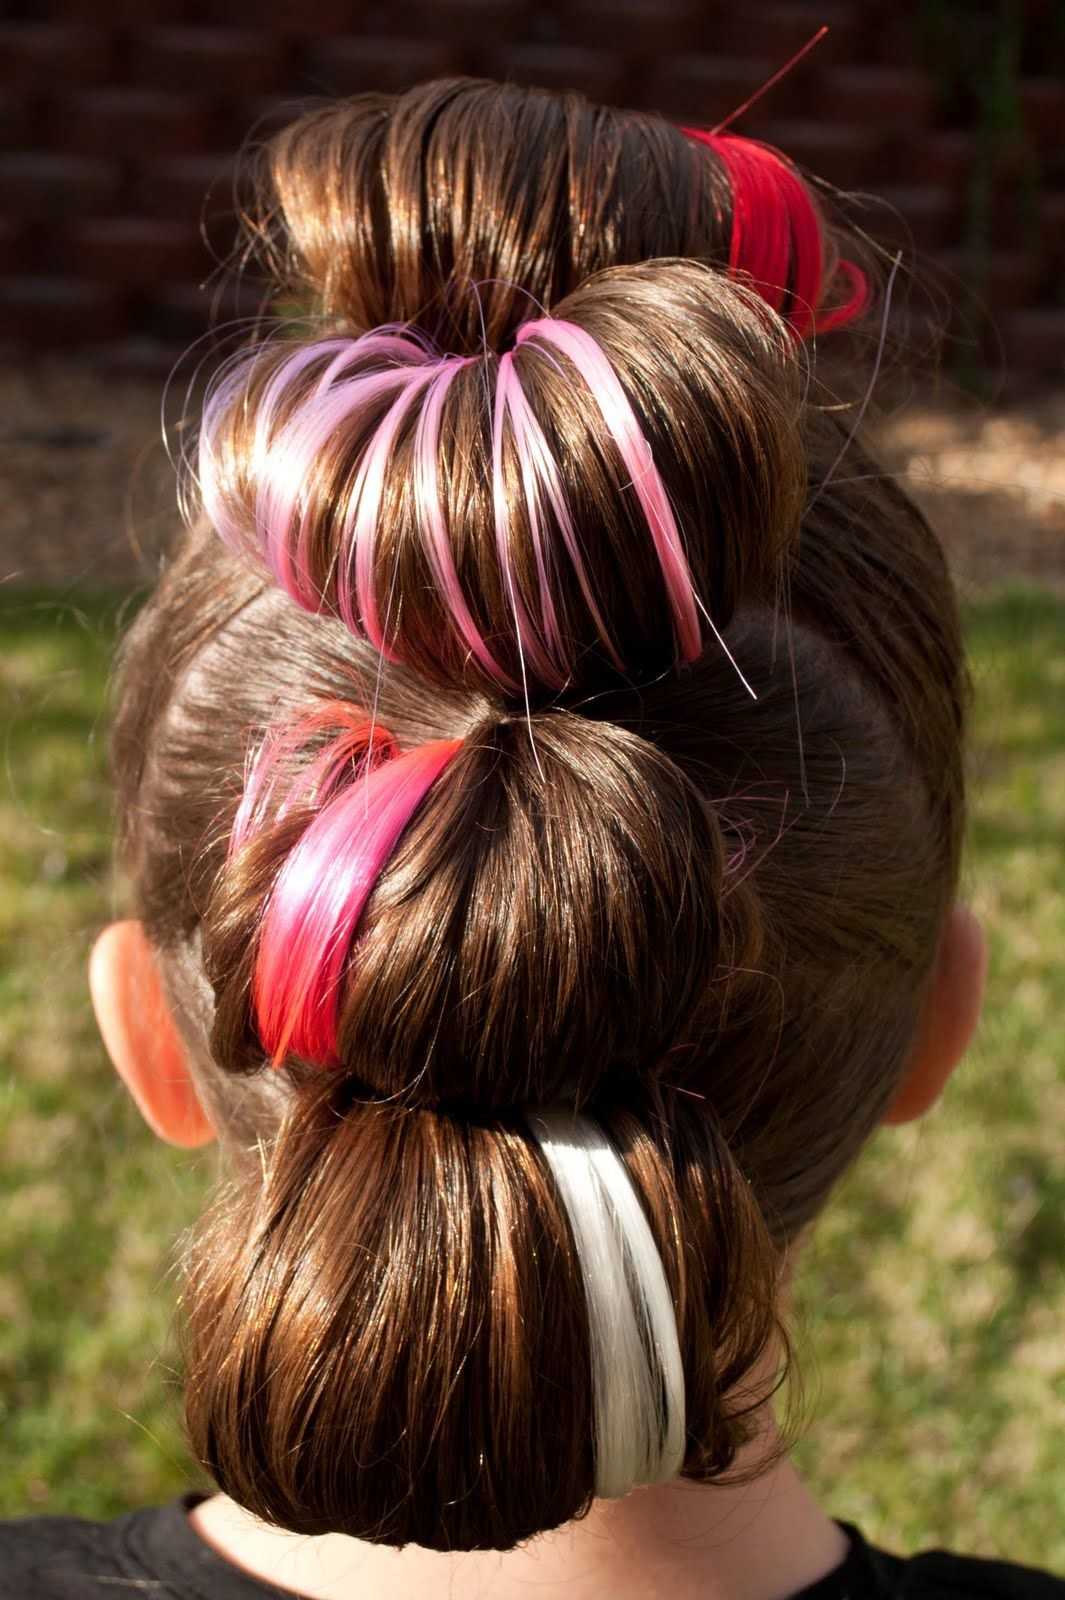 Rockstar Hair For Little Girl Hair Style Pinterest Hair Crazy